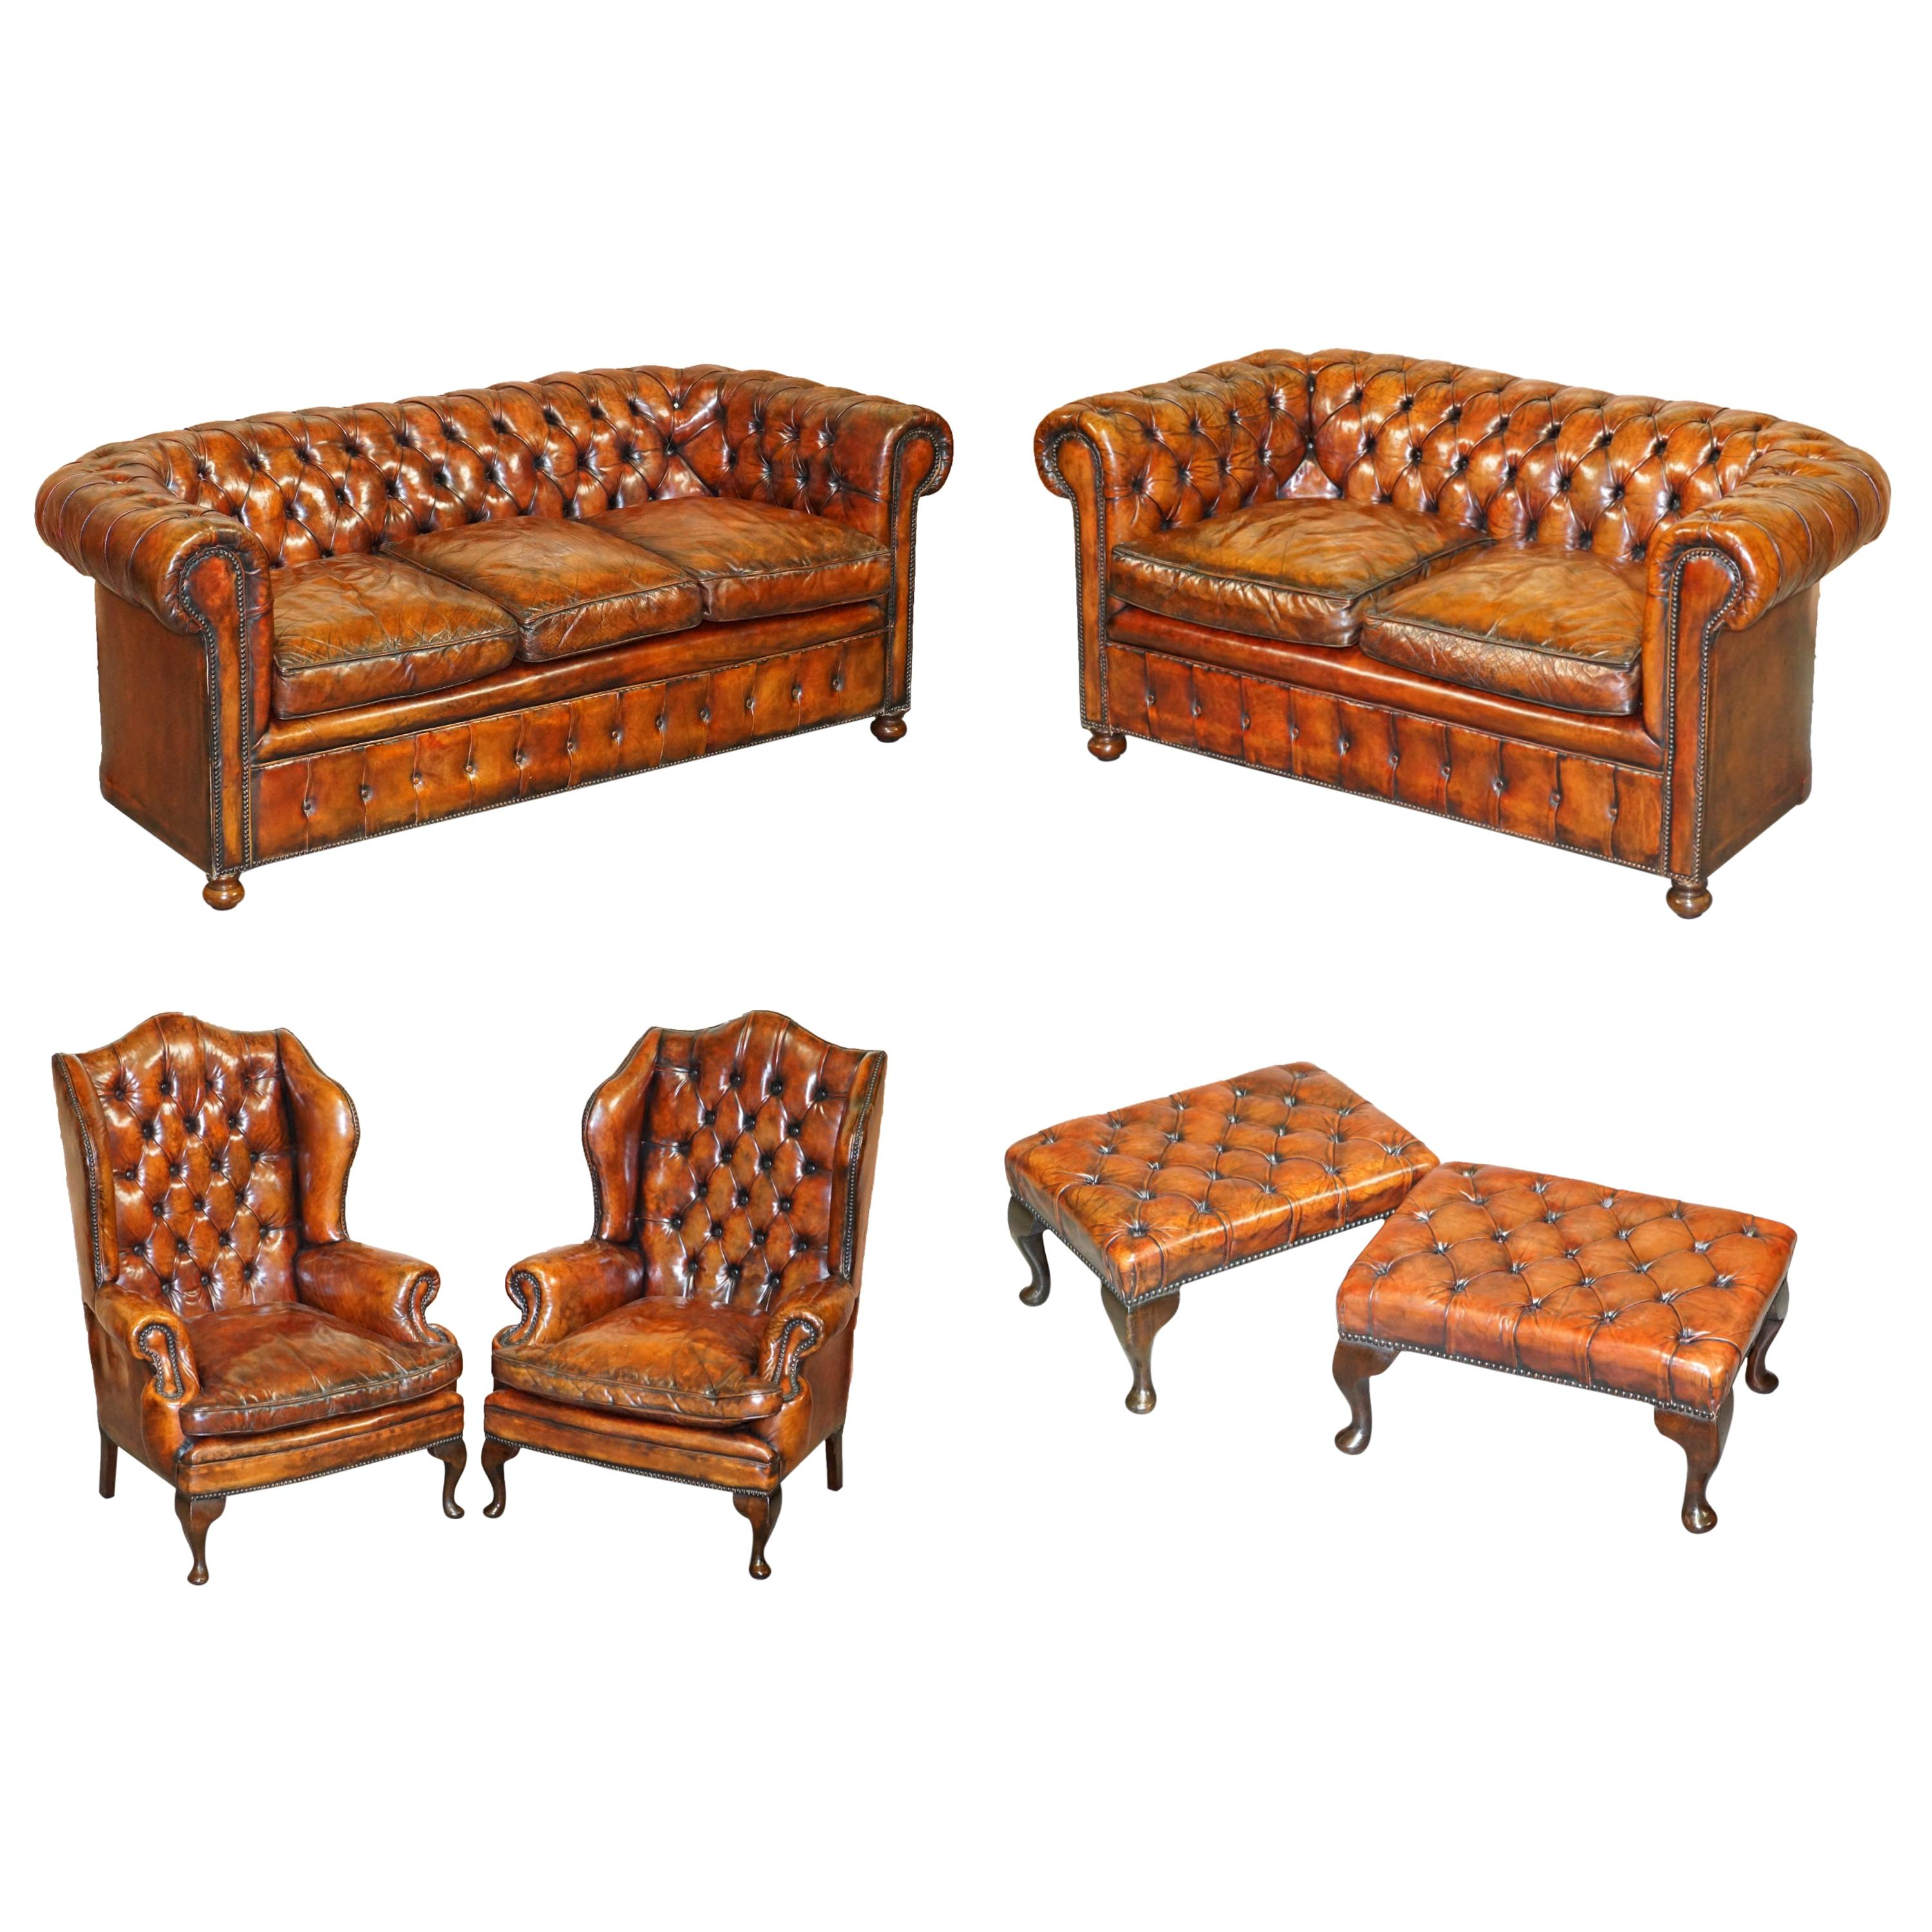 Rare Victorian Chesterfield Brown Leather Six Piece Sofa Armchairs Stool Suite